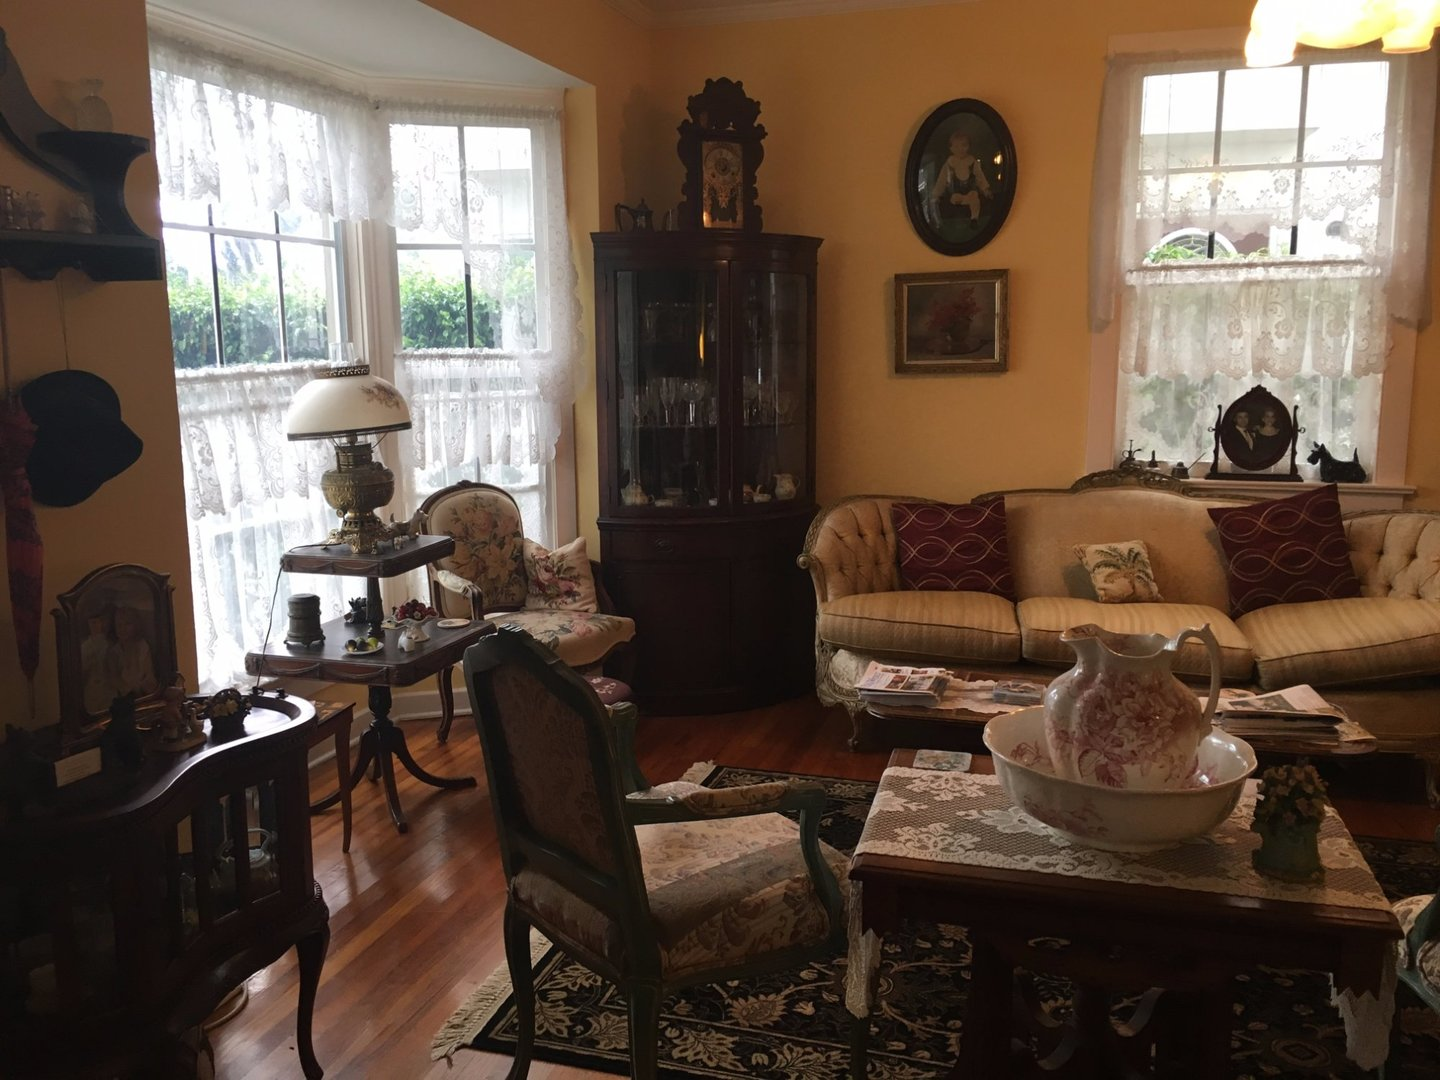 Lake Worth Bed and Breakfast